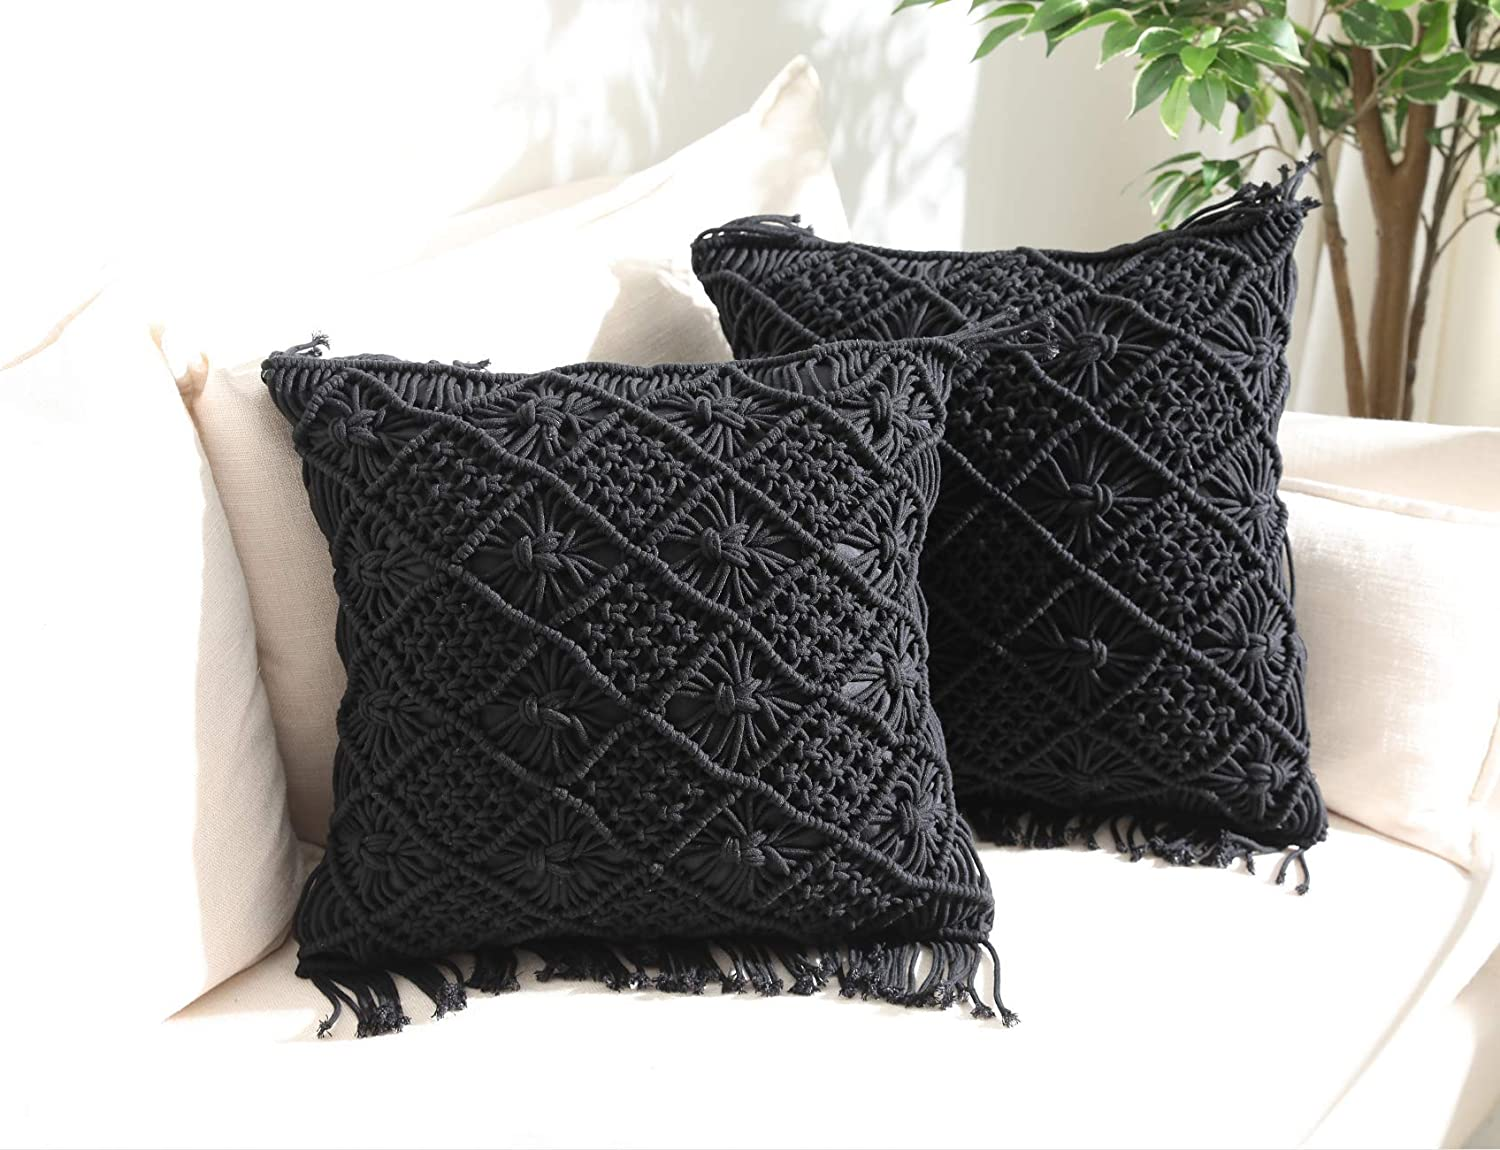 "Throw Pillow Cases, Decorative Cushion Cover, Boho Woven Pillowcase for Home Party Office and Outdoor Decoration, Soft Woven Pillow Case with Tassels, Set of 2 Macrame Cushion Case (17""x17"", Black)"